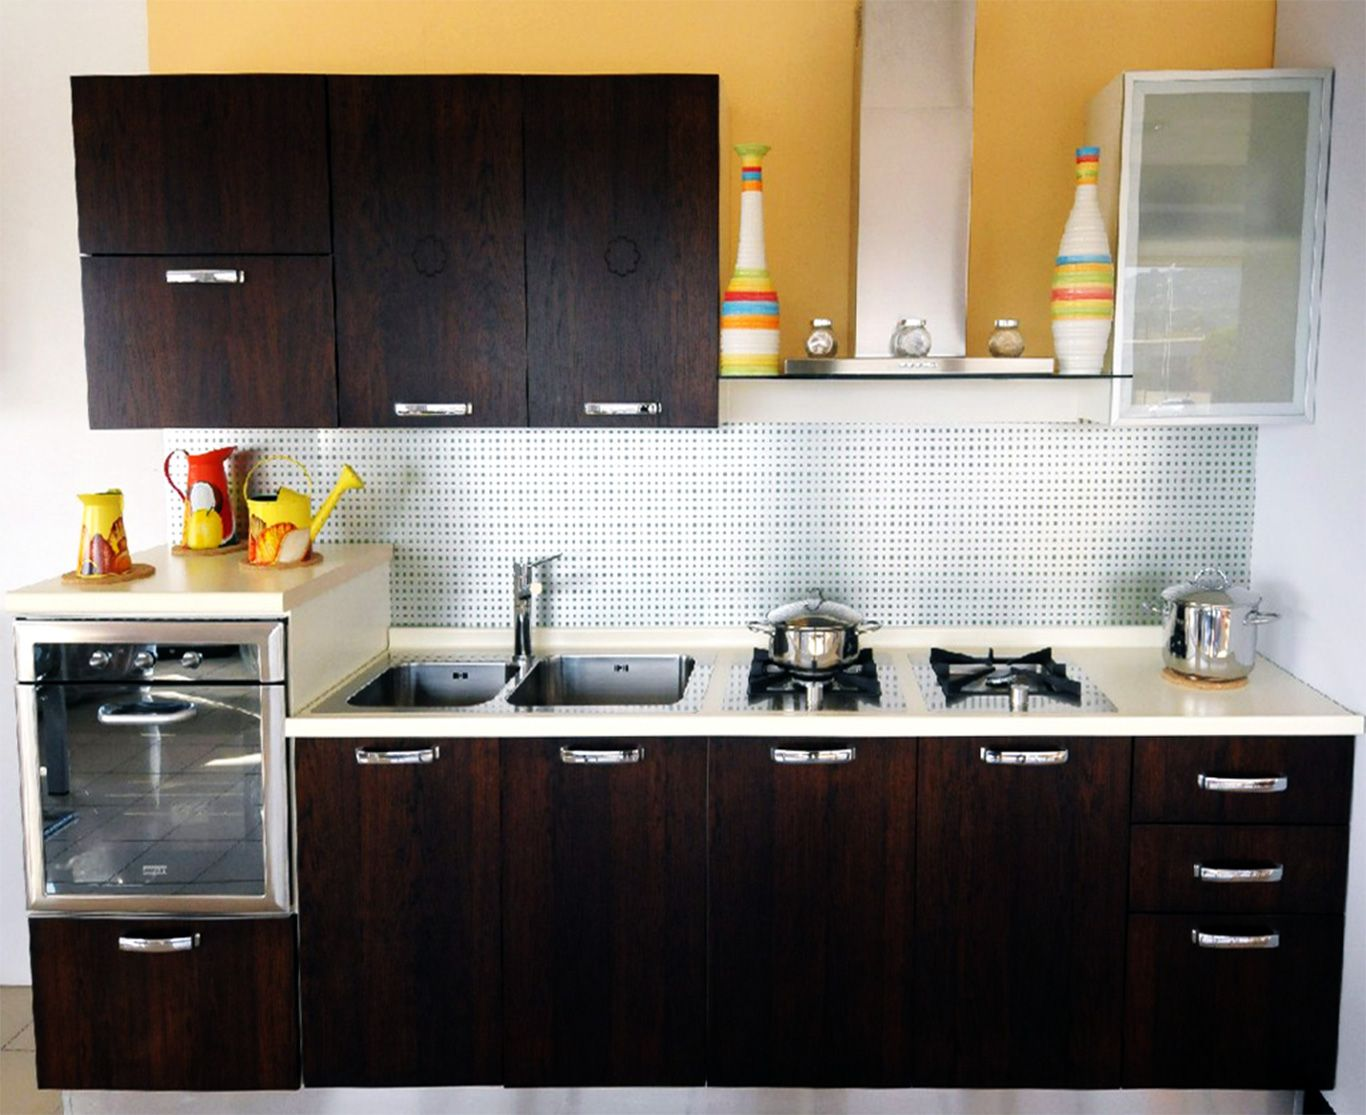 Pune kitchens is the modular kitchen shutters supplier for Kitchen designs and more